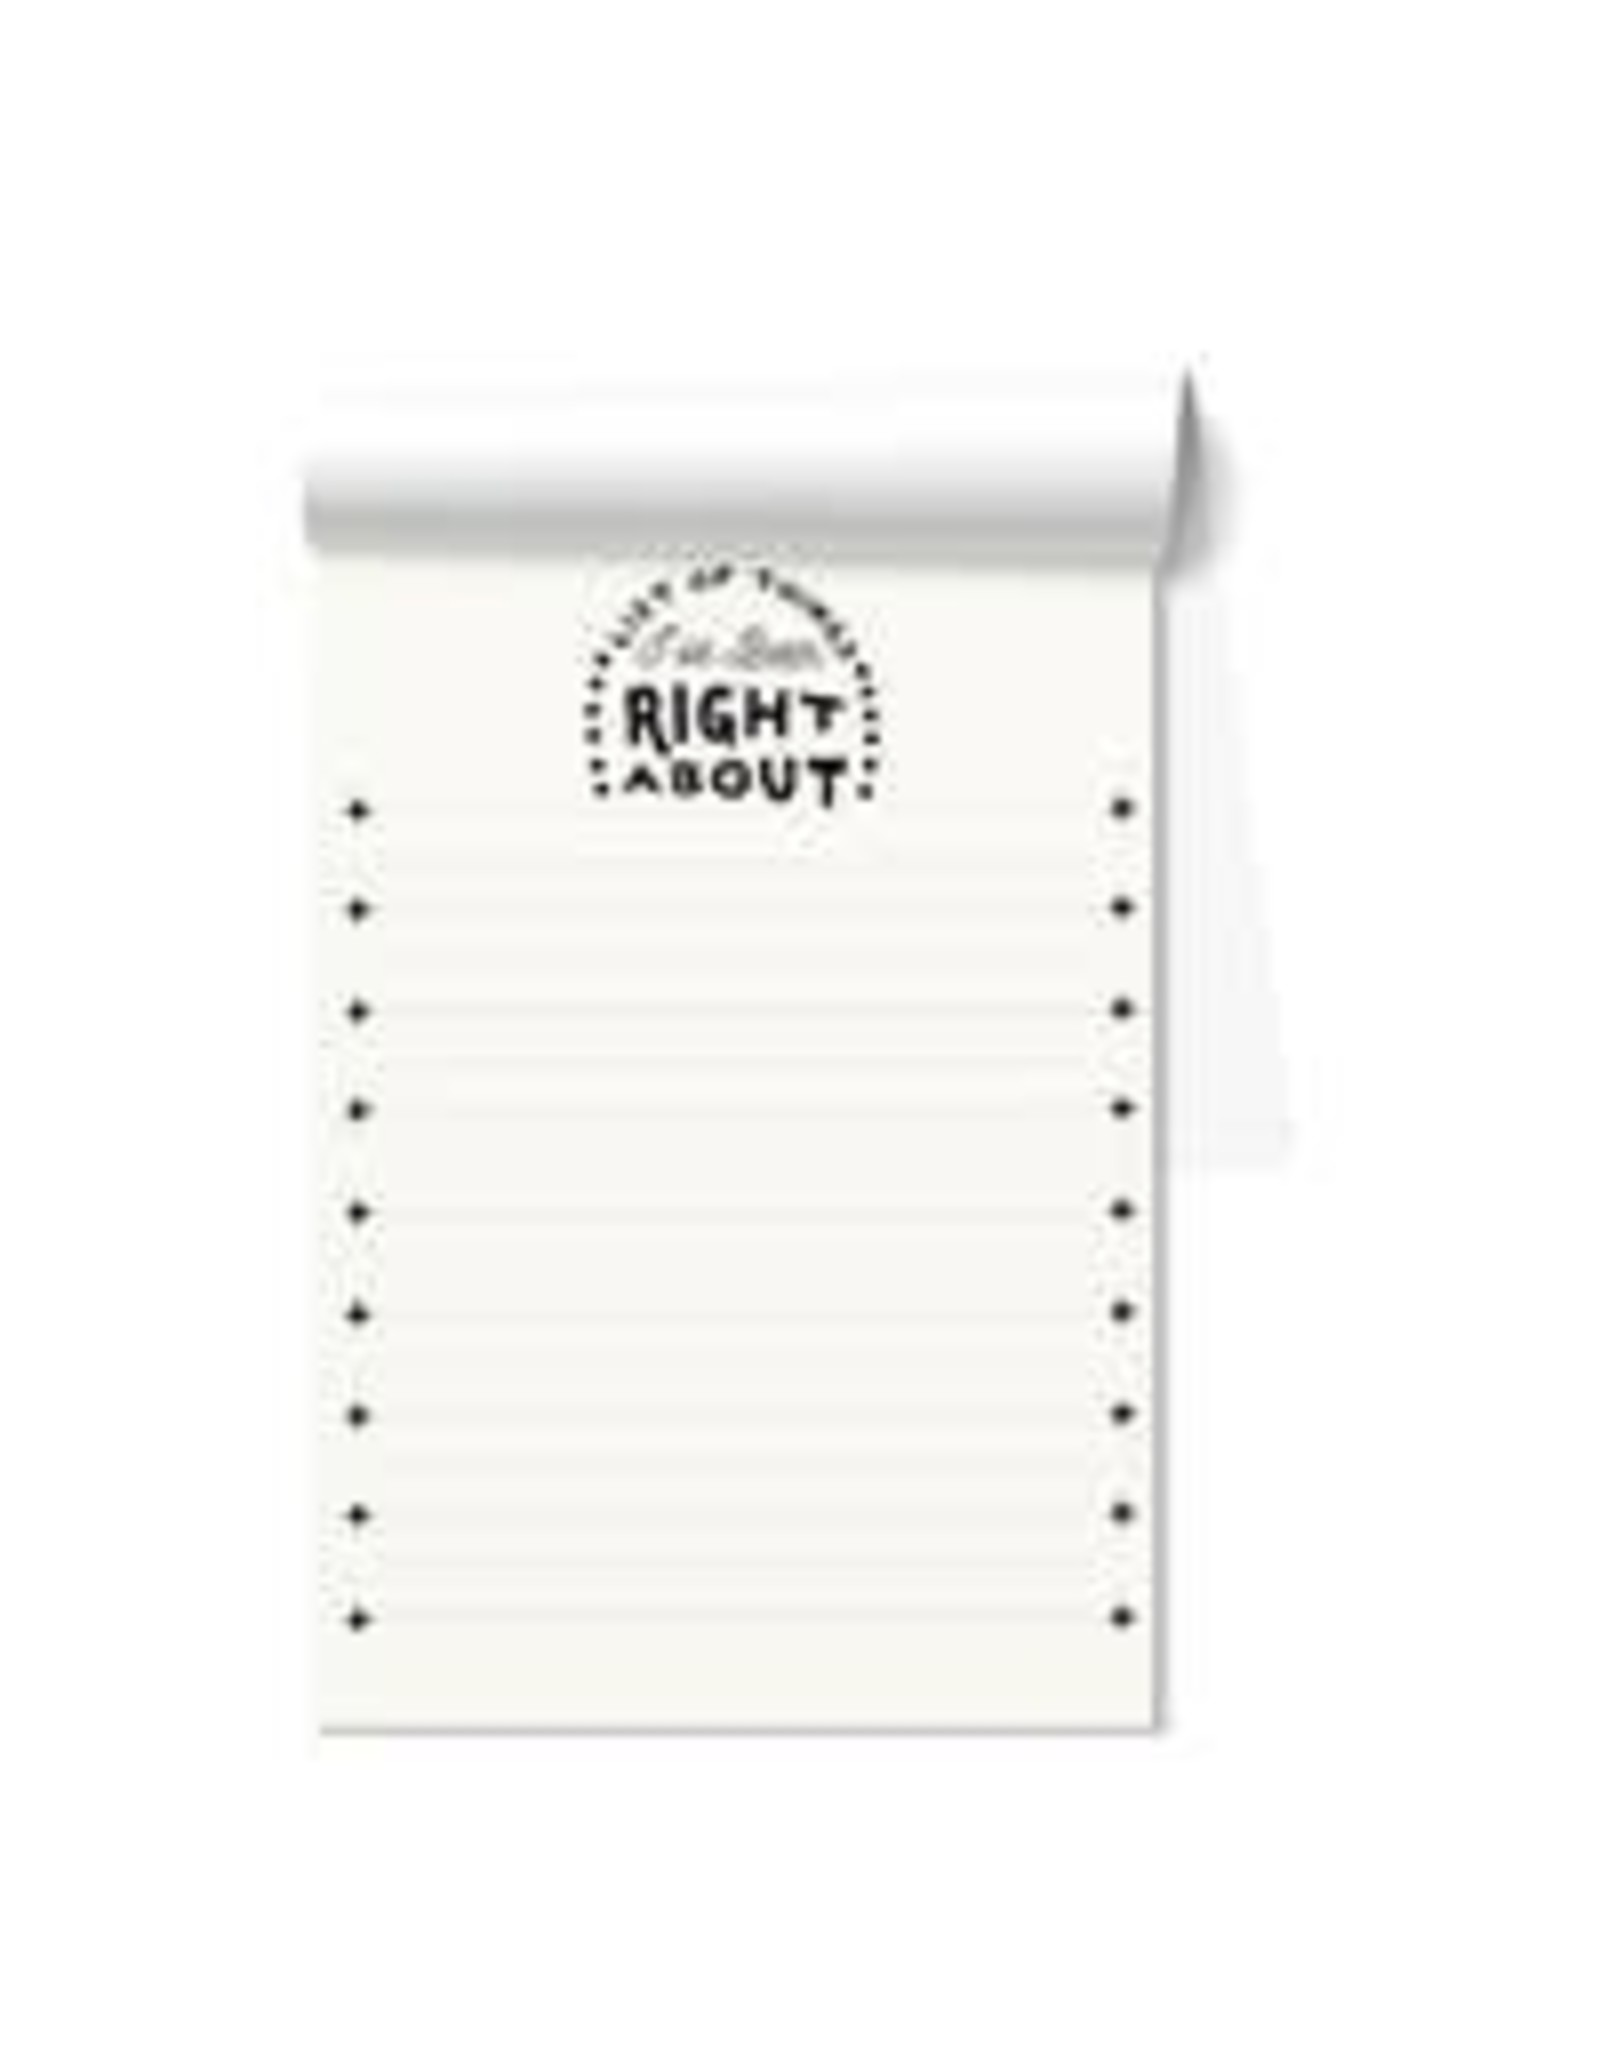 List of ThingsList Of Things I Have been Right About Notepad